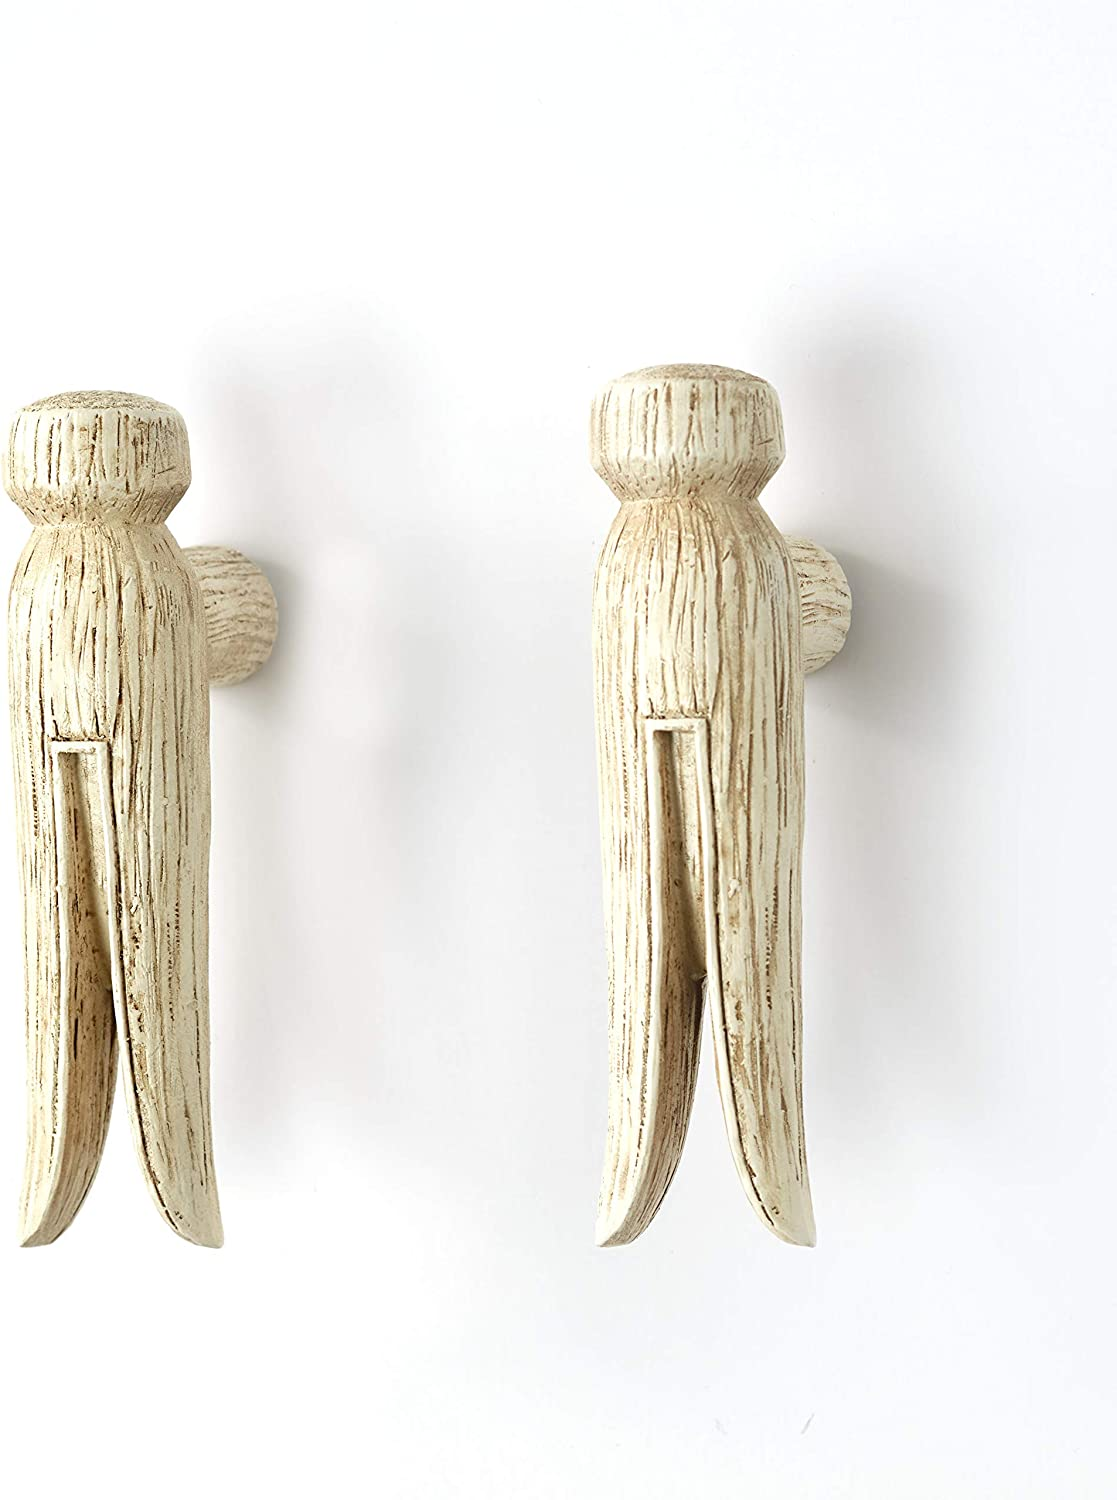 Vintage Clothes Pin Cabinet Door Pulls - Laundry Room Decor - Set of 2